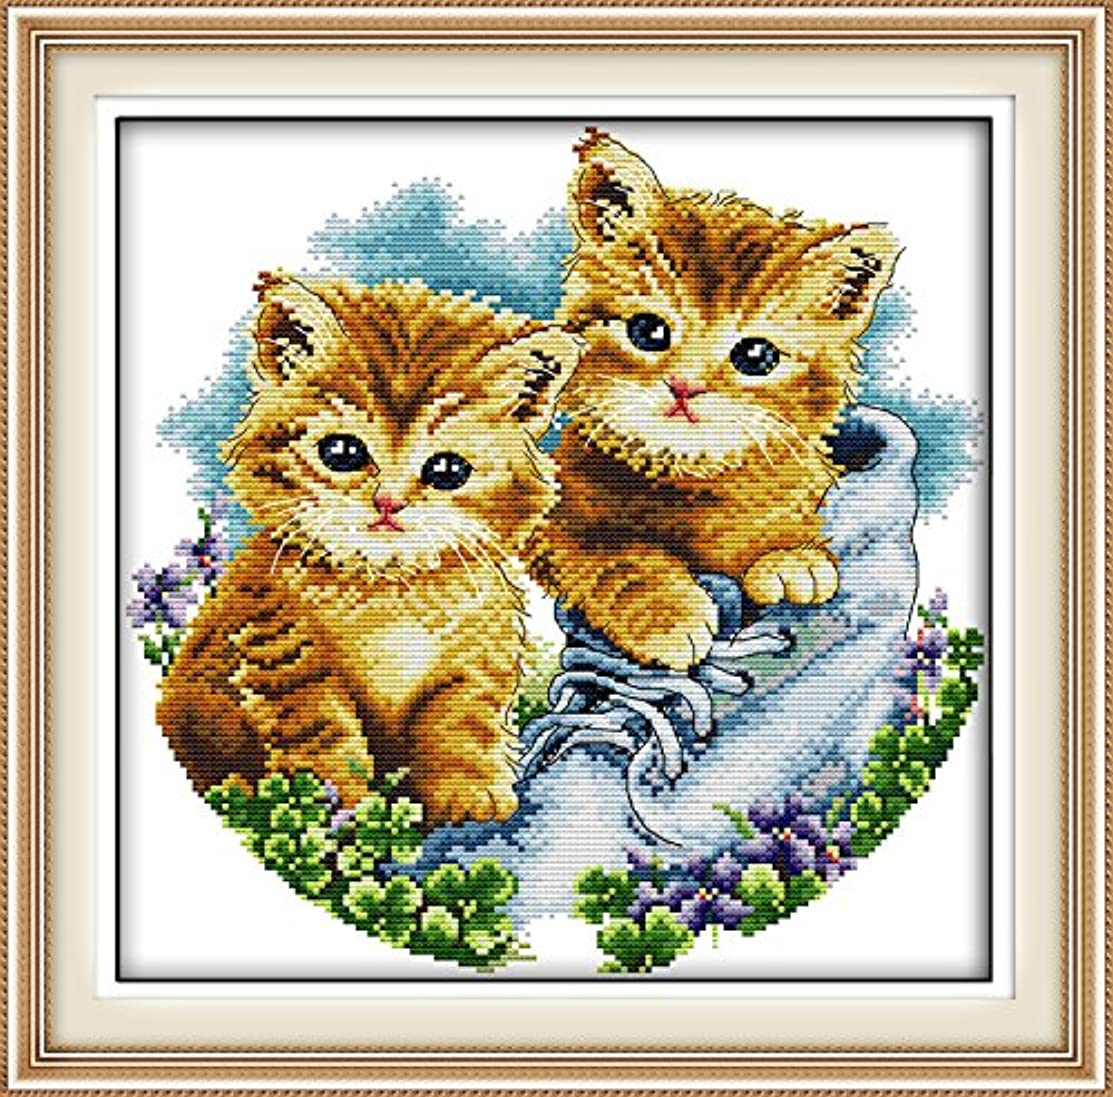 Full Range of Embroidery Starter Kits Stamped Cross Stitch Kits Beginners for DIY Embroidery with 40 Pattern Designs - Cats